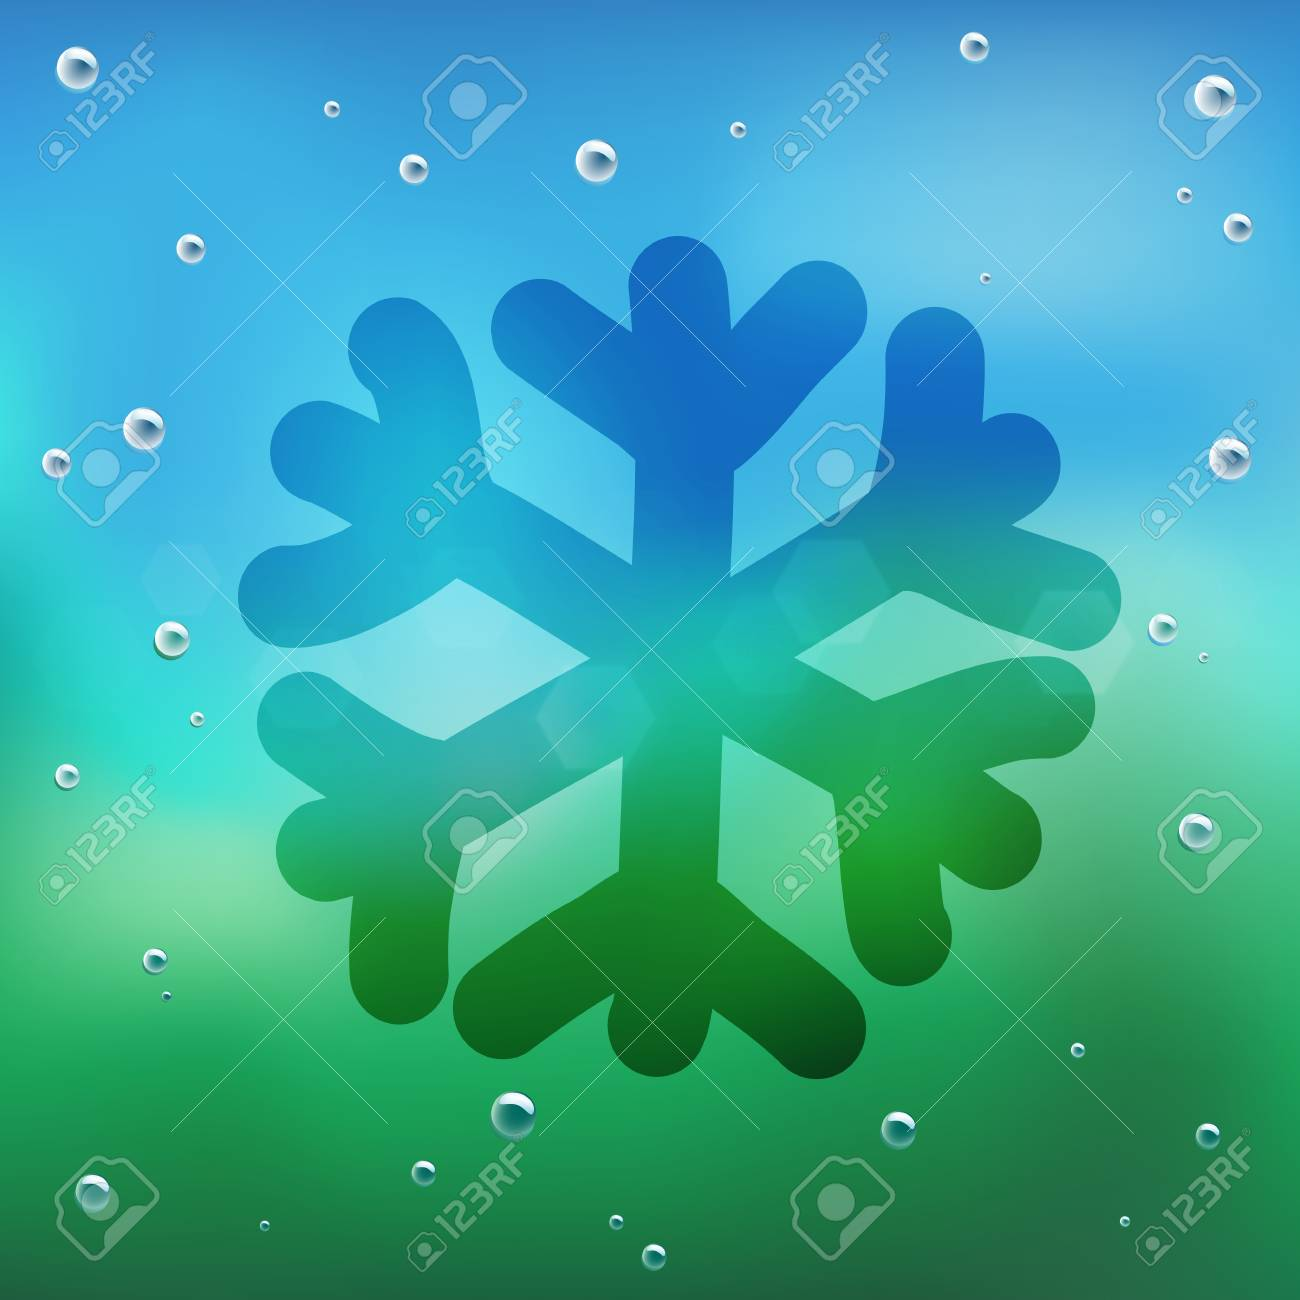 Hand draw cartoon and water drop on glass. Stock Vector - 16987493